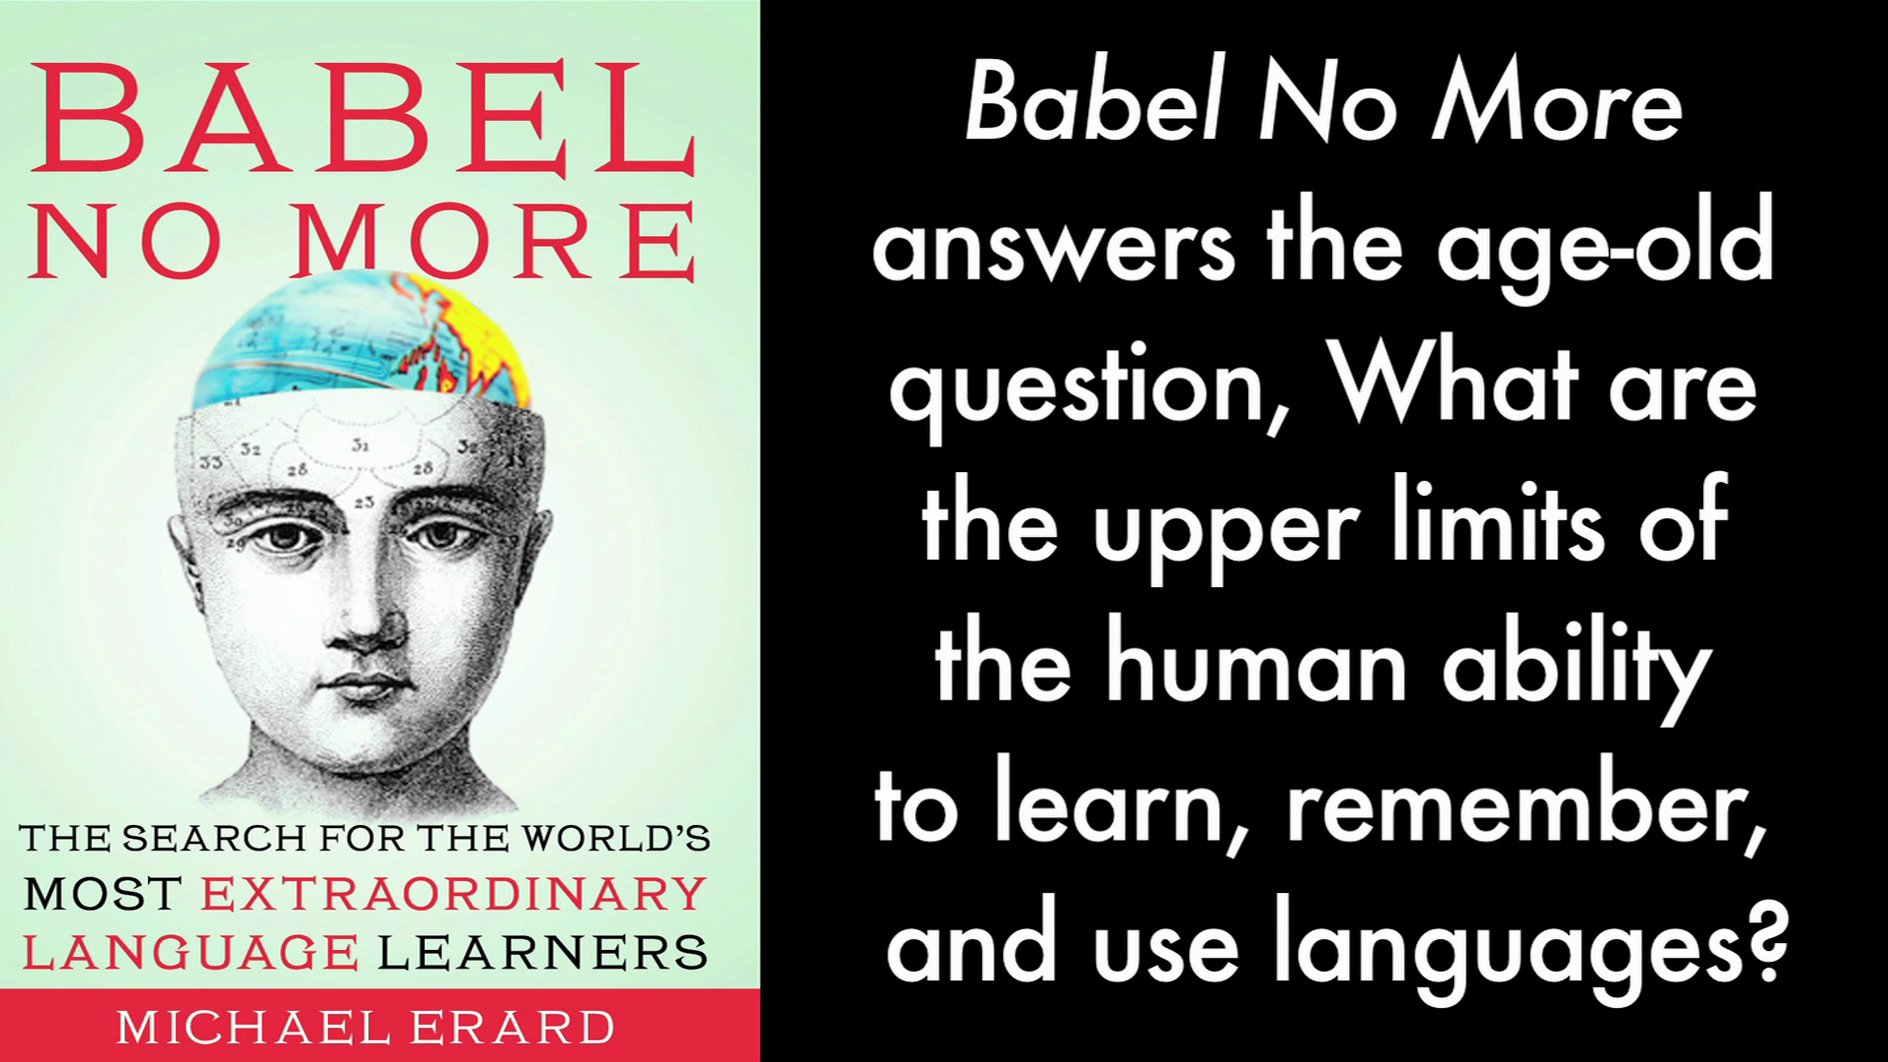 Introducing BABEL NO MORE